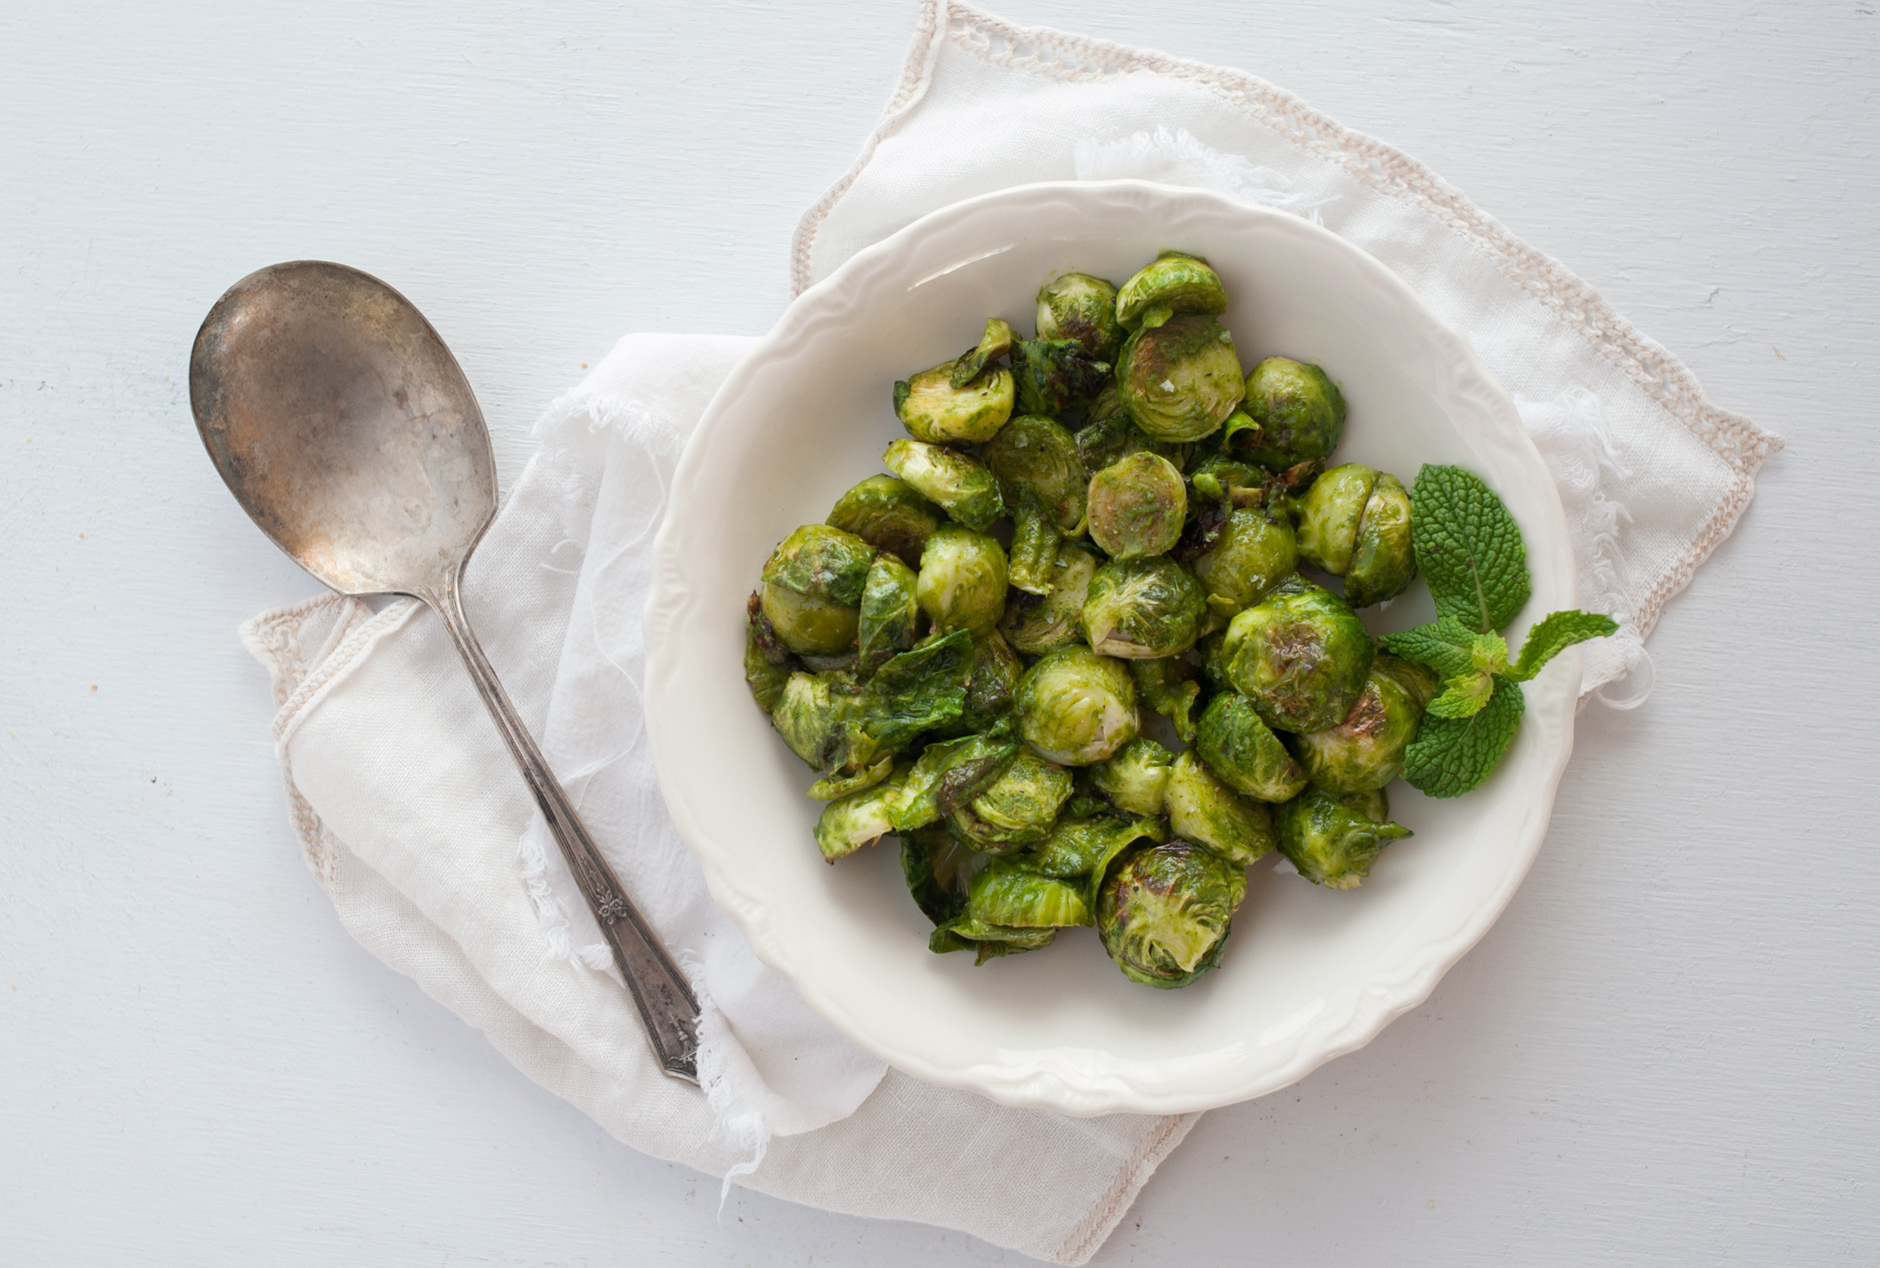 brussels_sprouts_food_photography_4.jpg